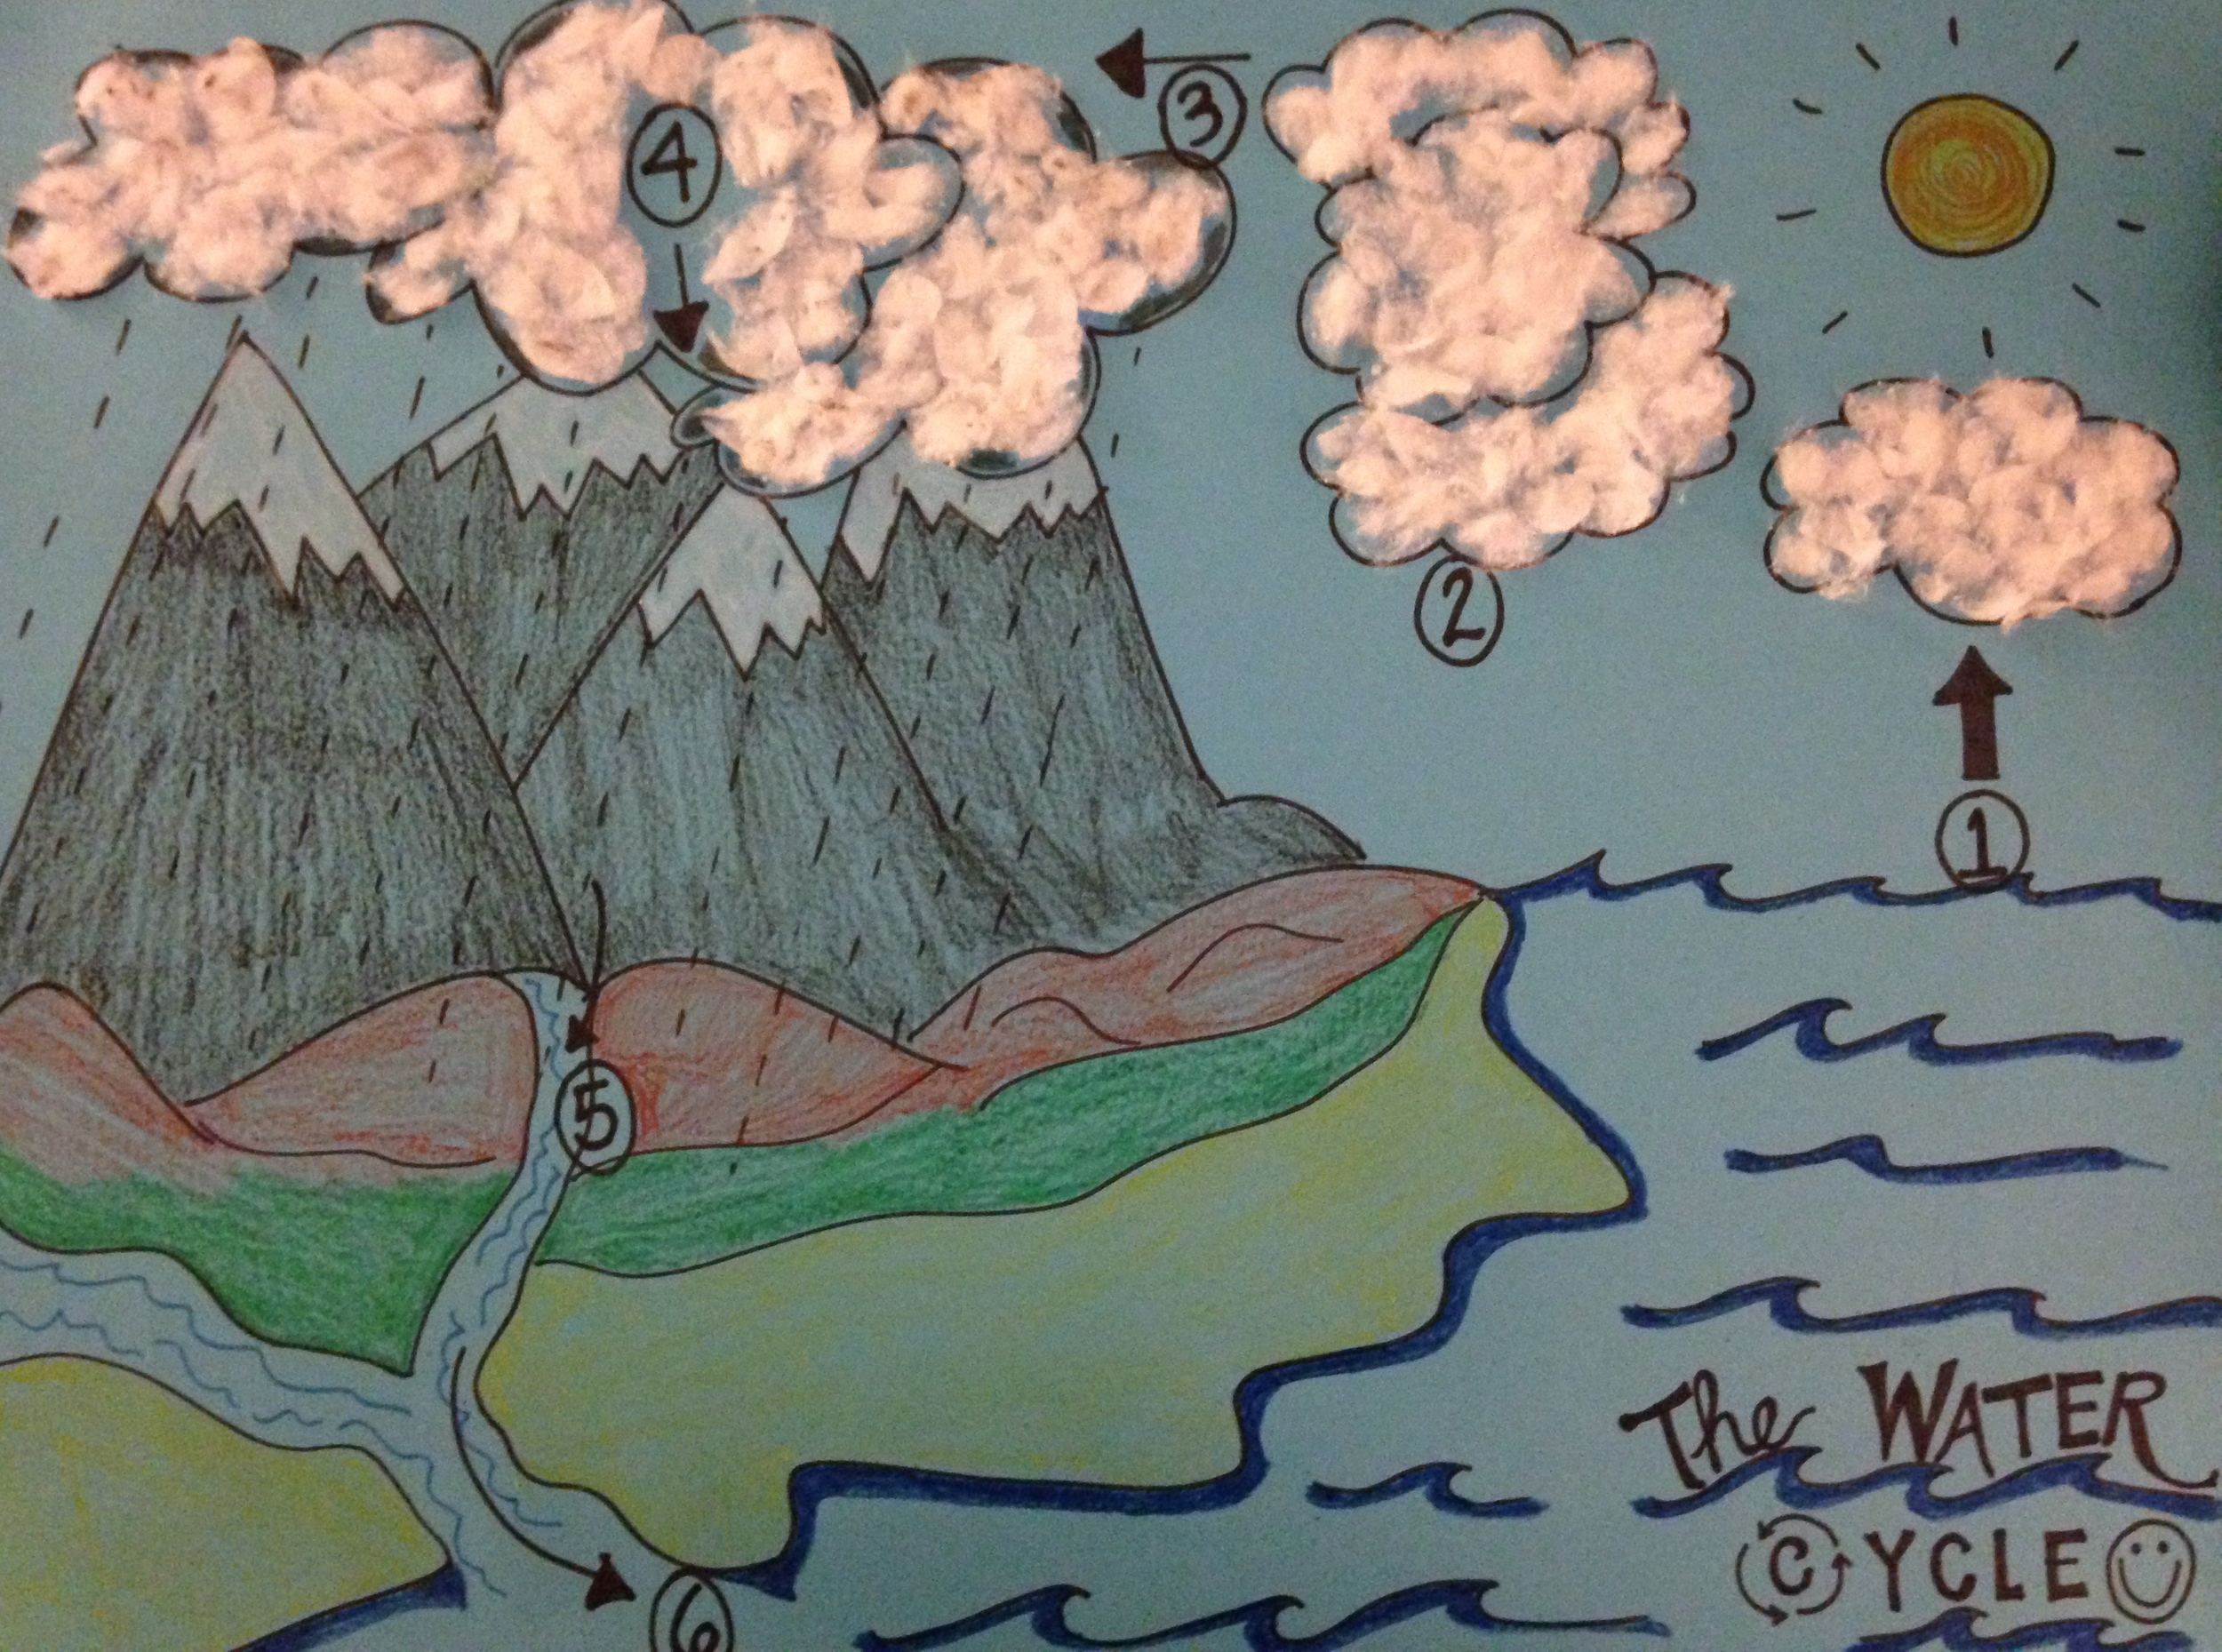 When in doubt, I color. Because it's so much fun. And yes, those clouds ARE 3D; thanks for noticing!